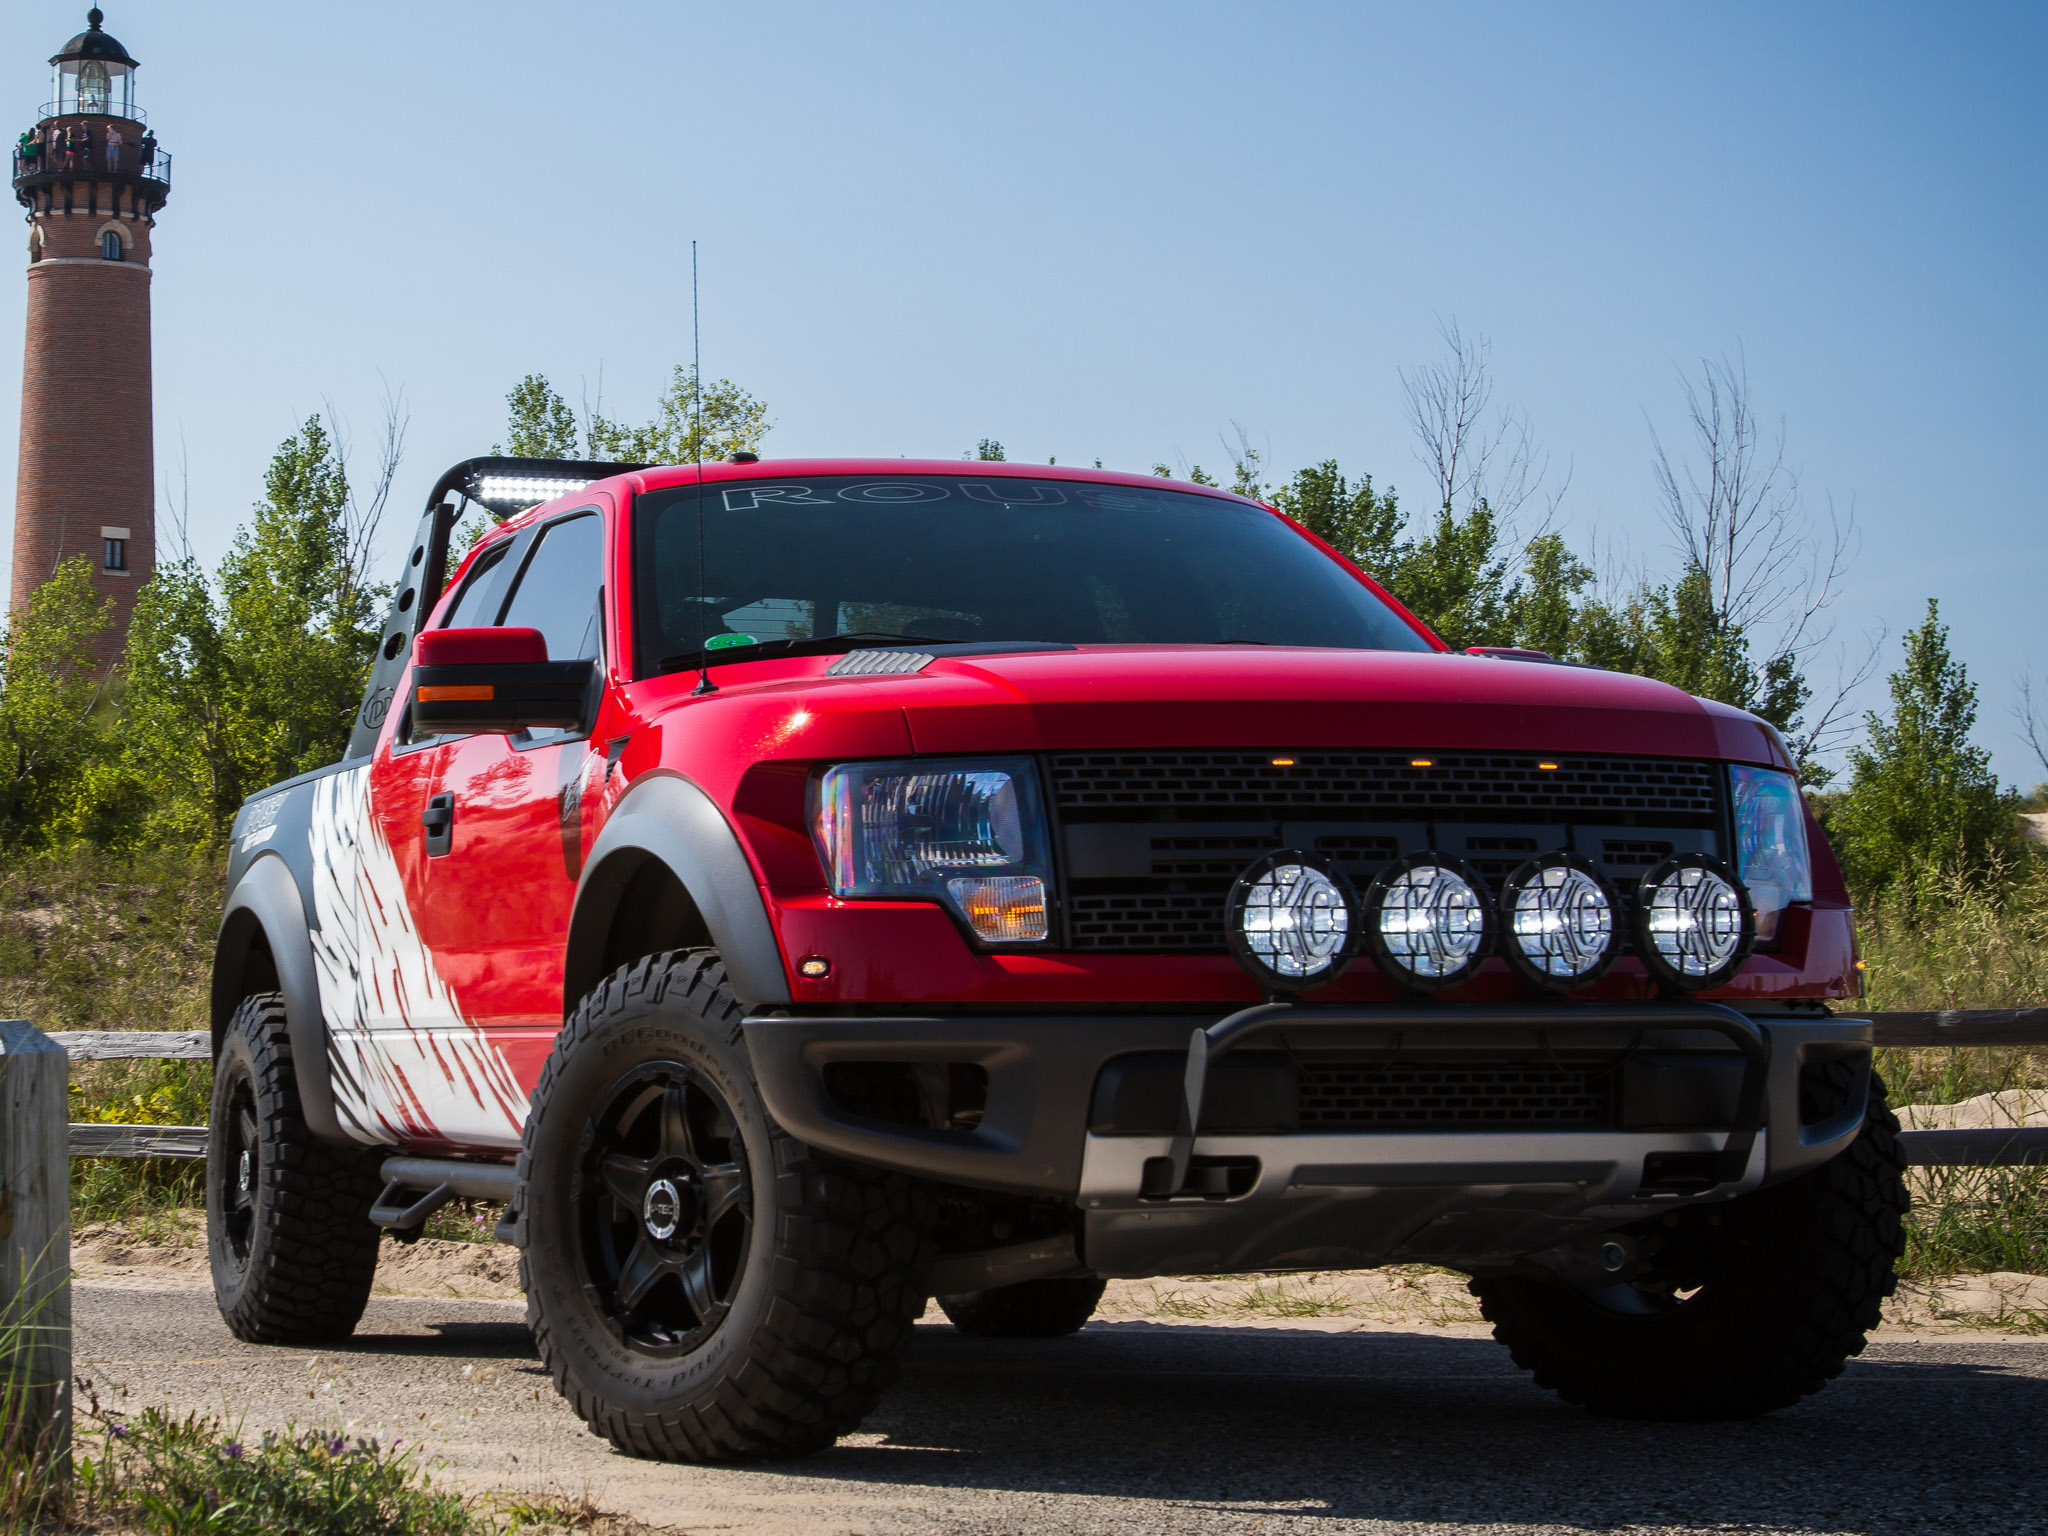 2012 Roush Ford F 150 SVT Raptor 4x4 muscle truck wallpaper background 2048x1536